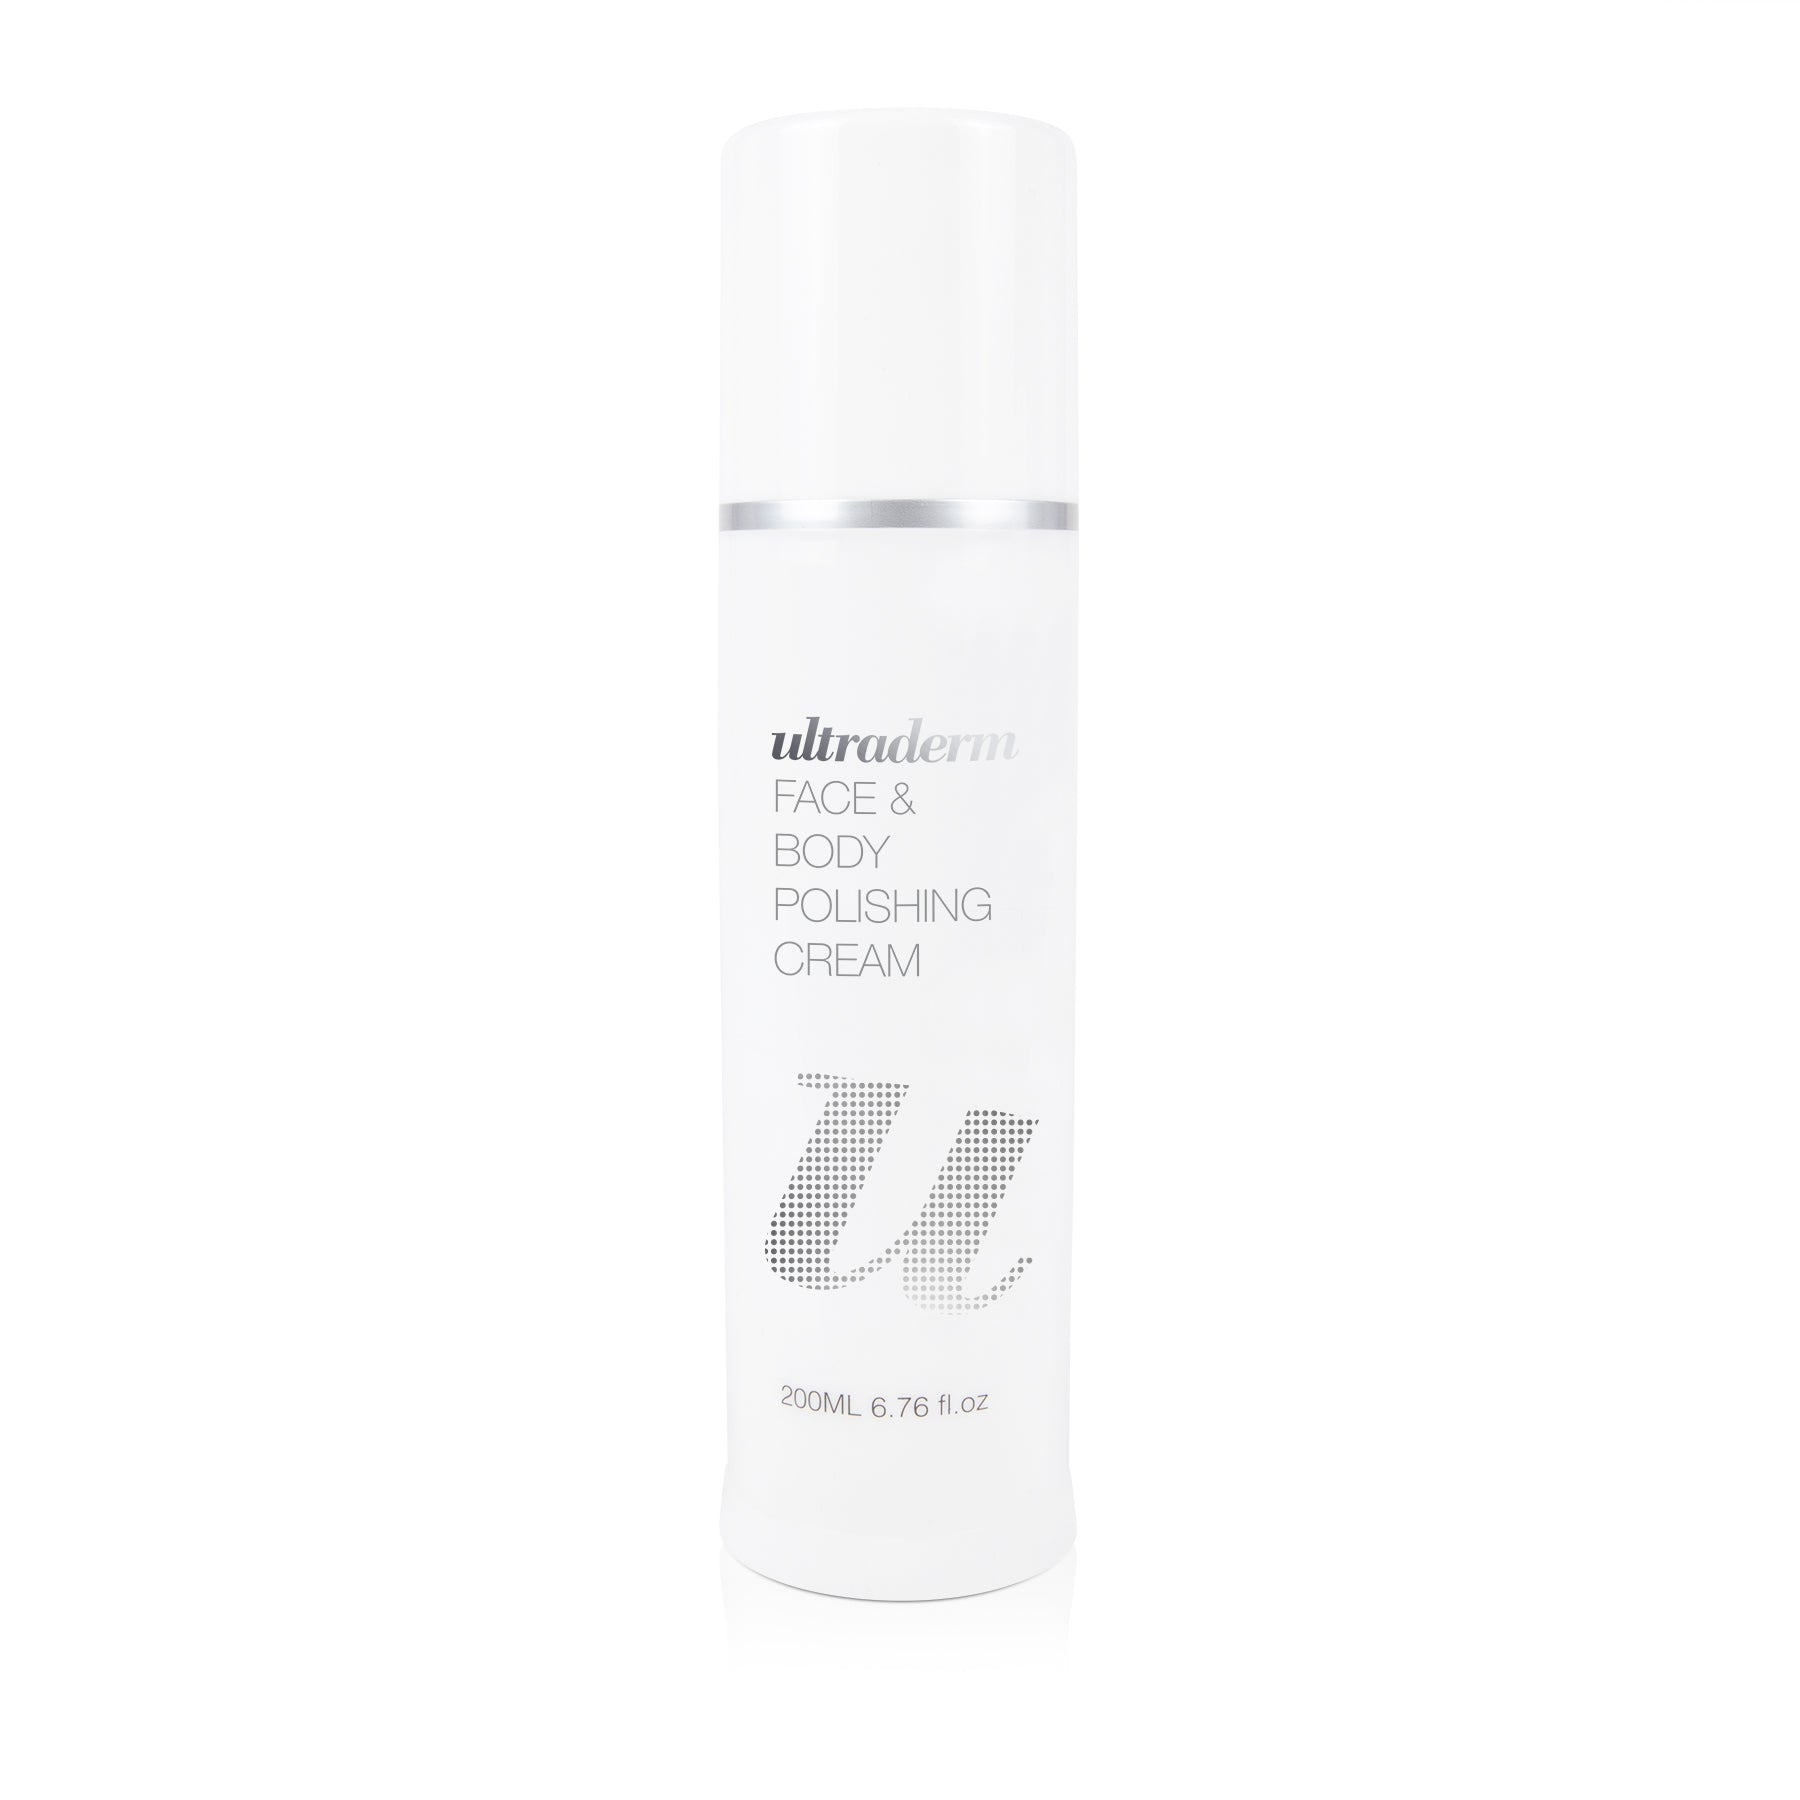 Ultraderm Face & Body Polishing Cream, Glycolic AHA Exfoliating Face Scrub